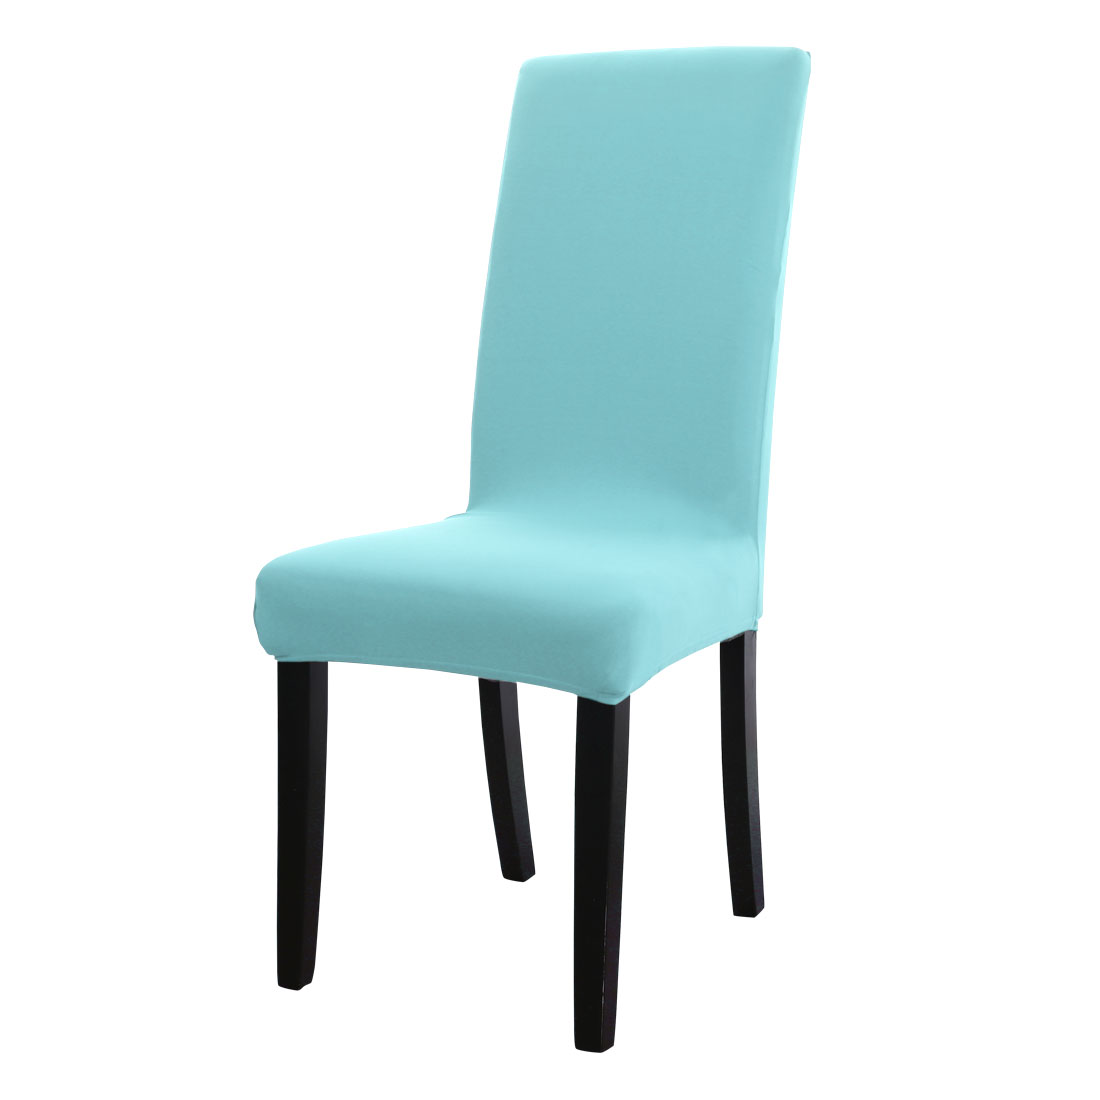 spandex washable dining room stool chair cover protector slipcover sky blue